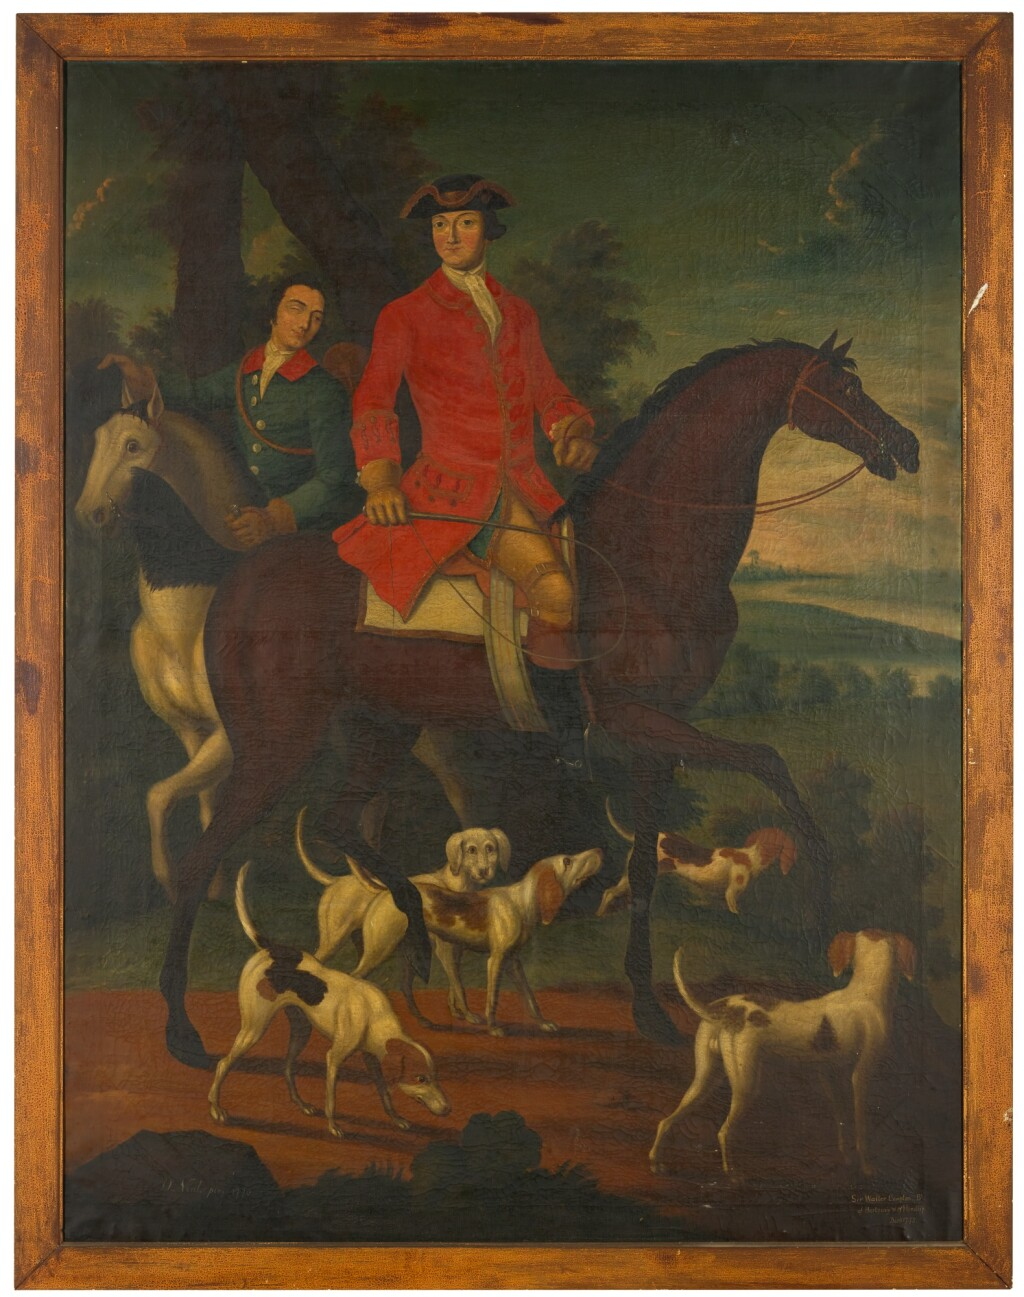 O. NEAL | Sir Walter Compton (1749-1773) and his hounds